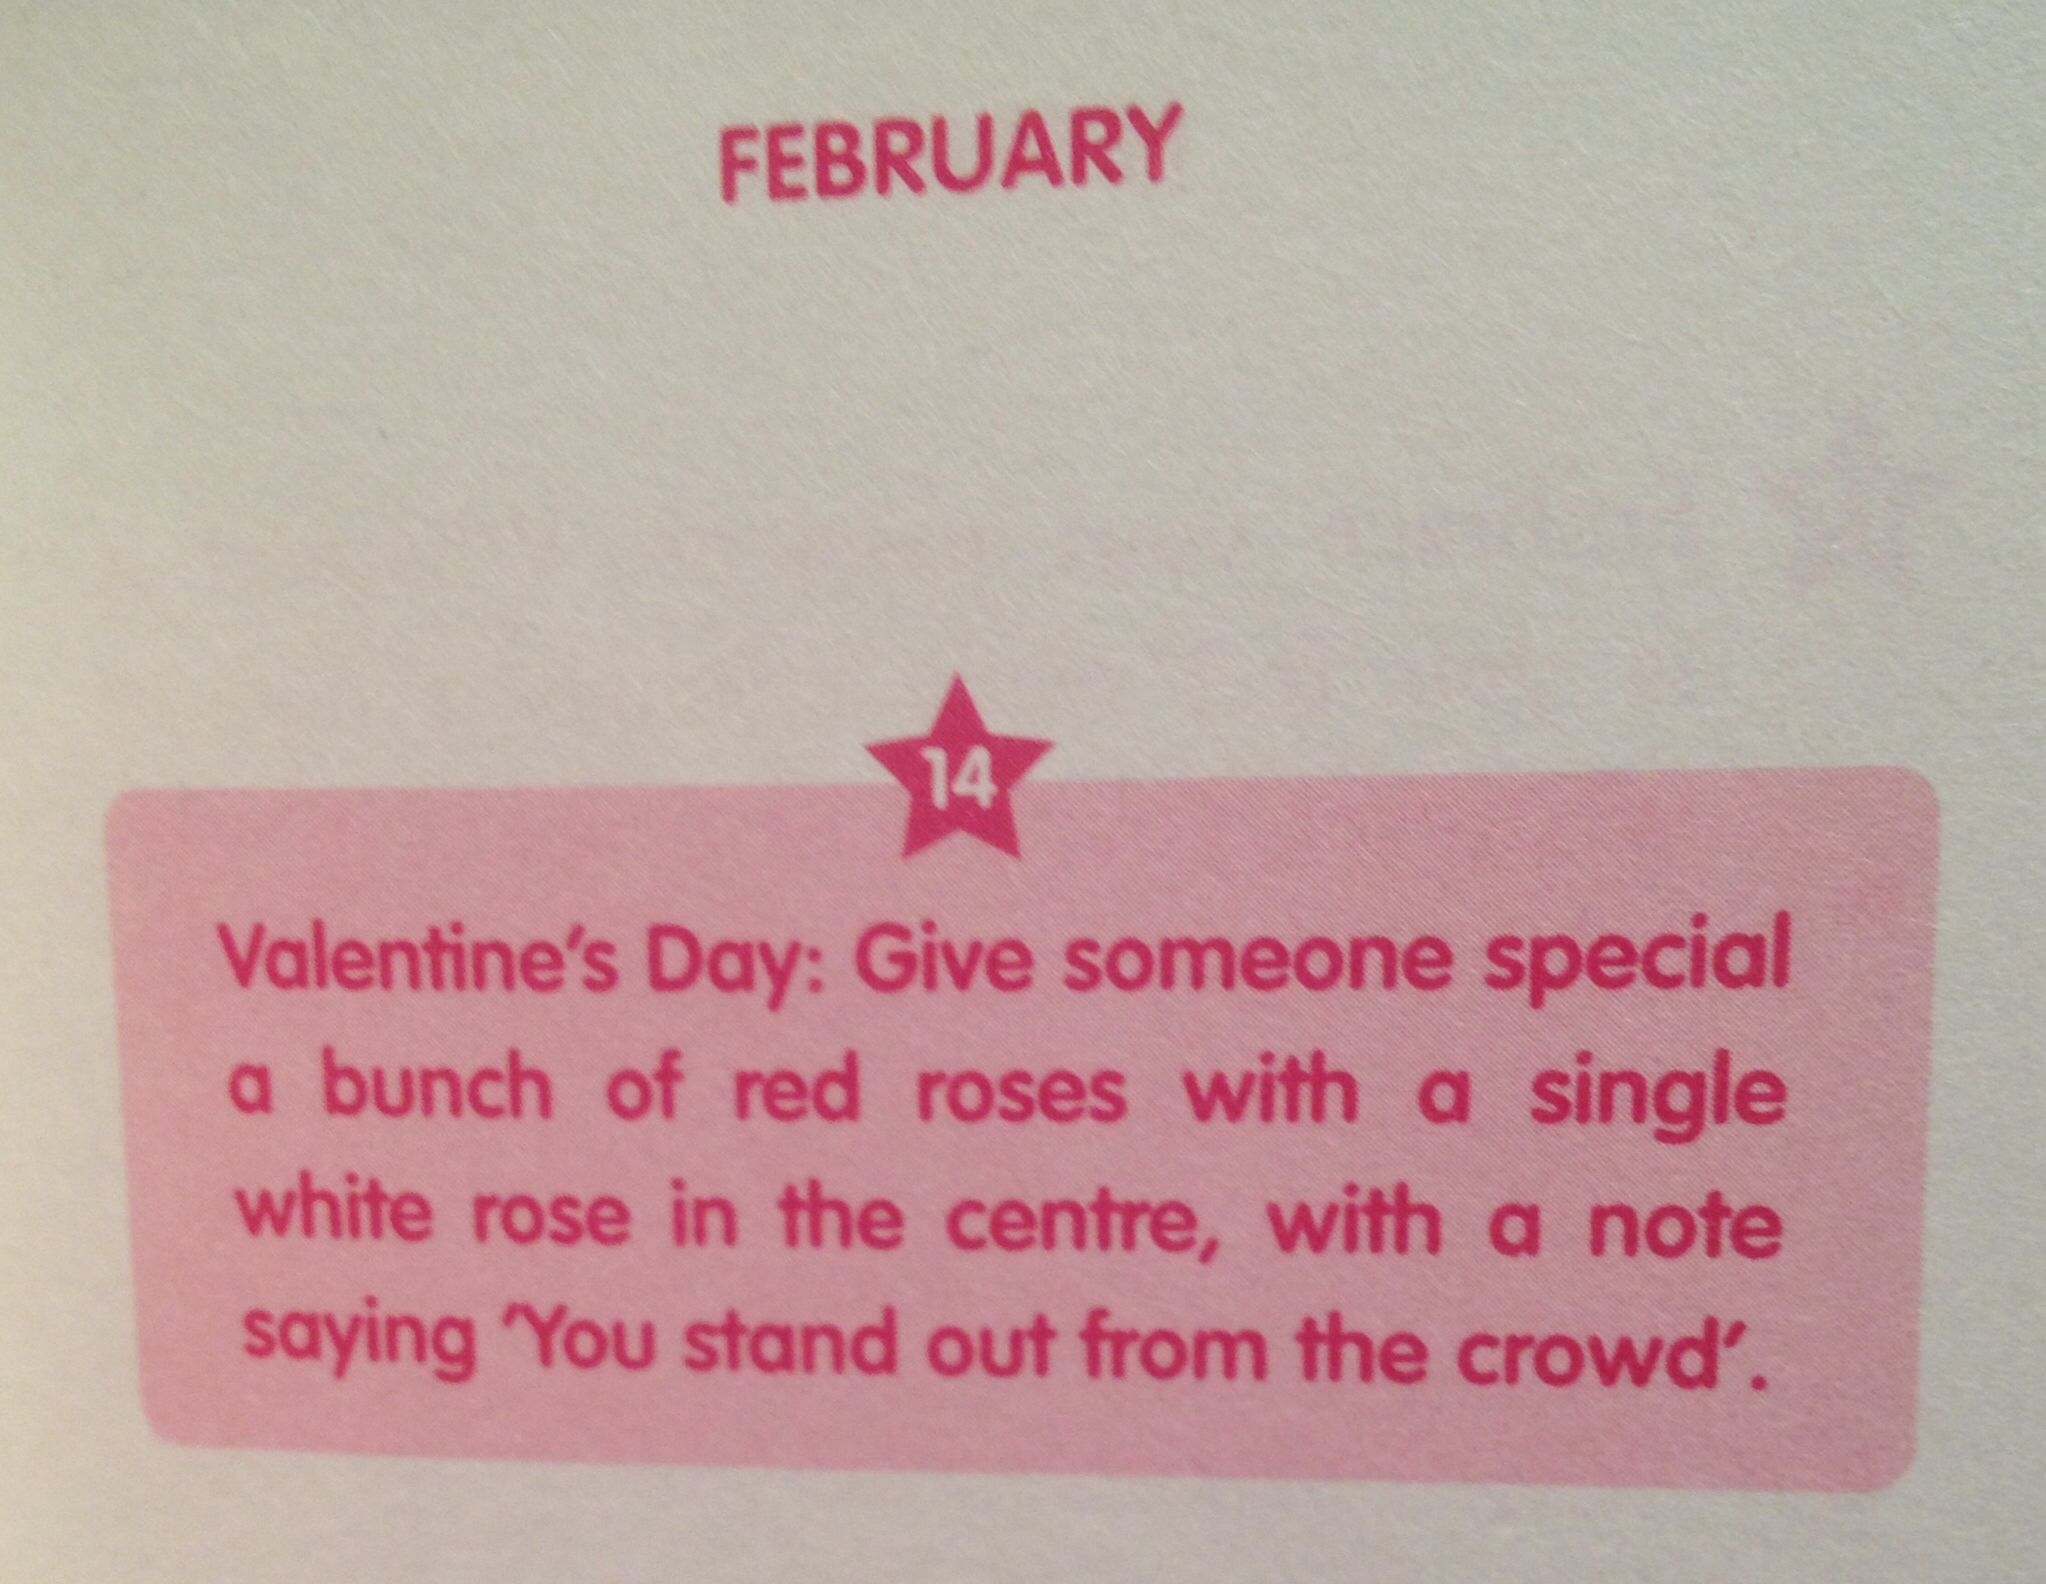 Cute valentines idea .. Roses stand out from the crowd #love